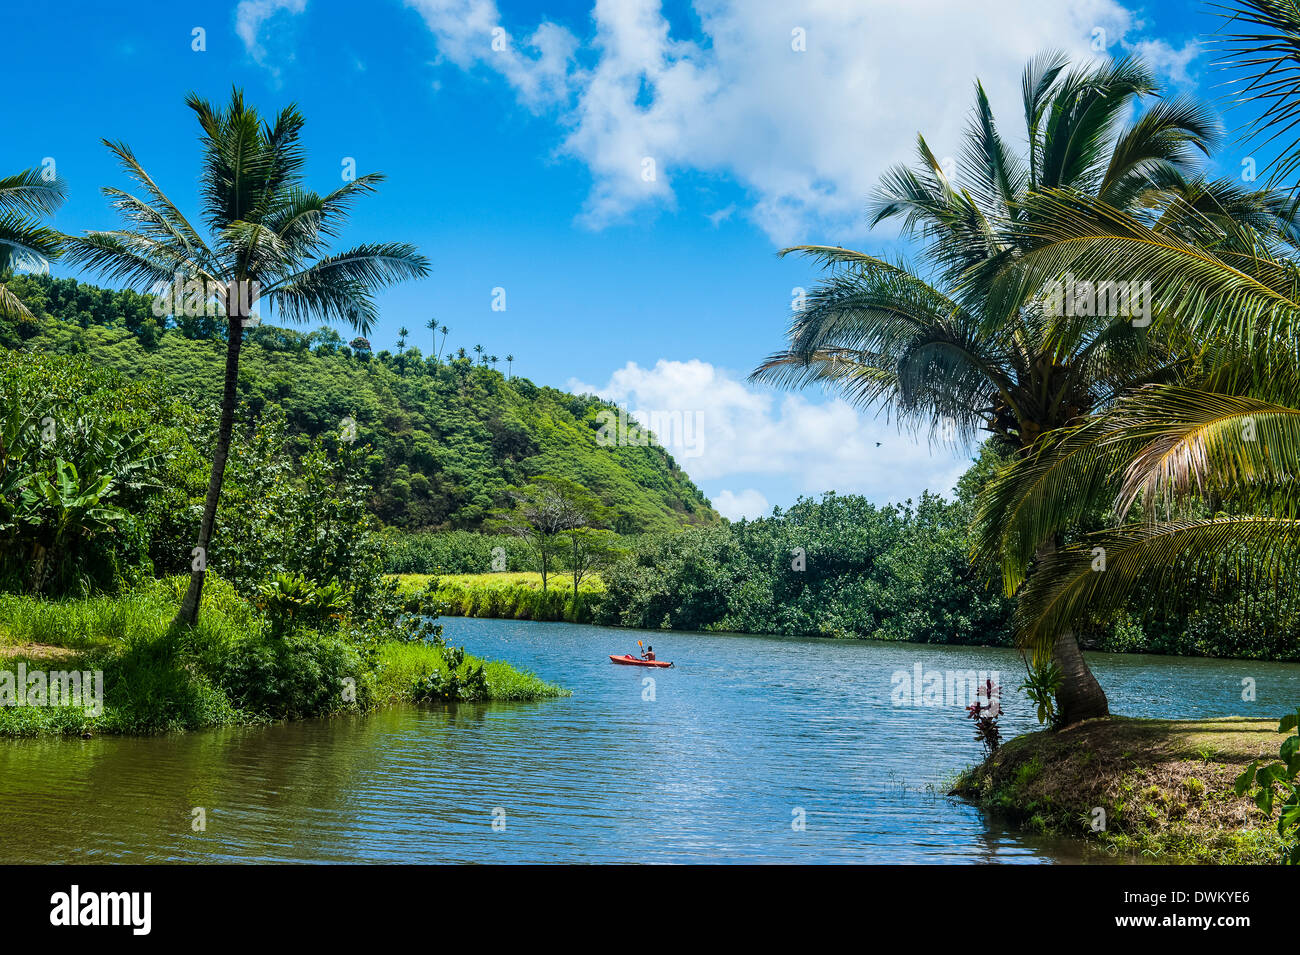 Wailua River. Kauai, Hawaii, United States of America, Pacific - Stock Image